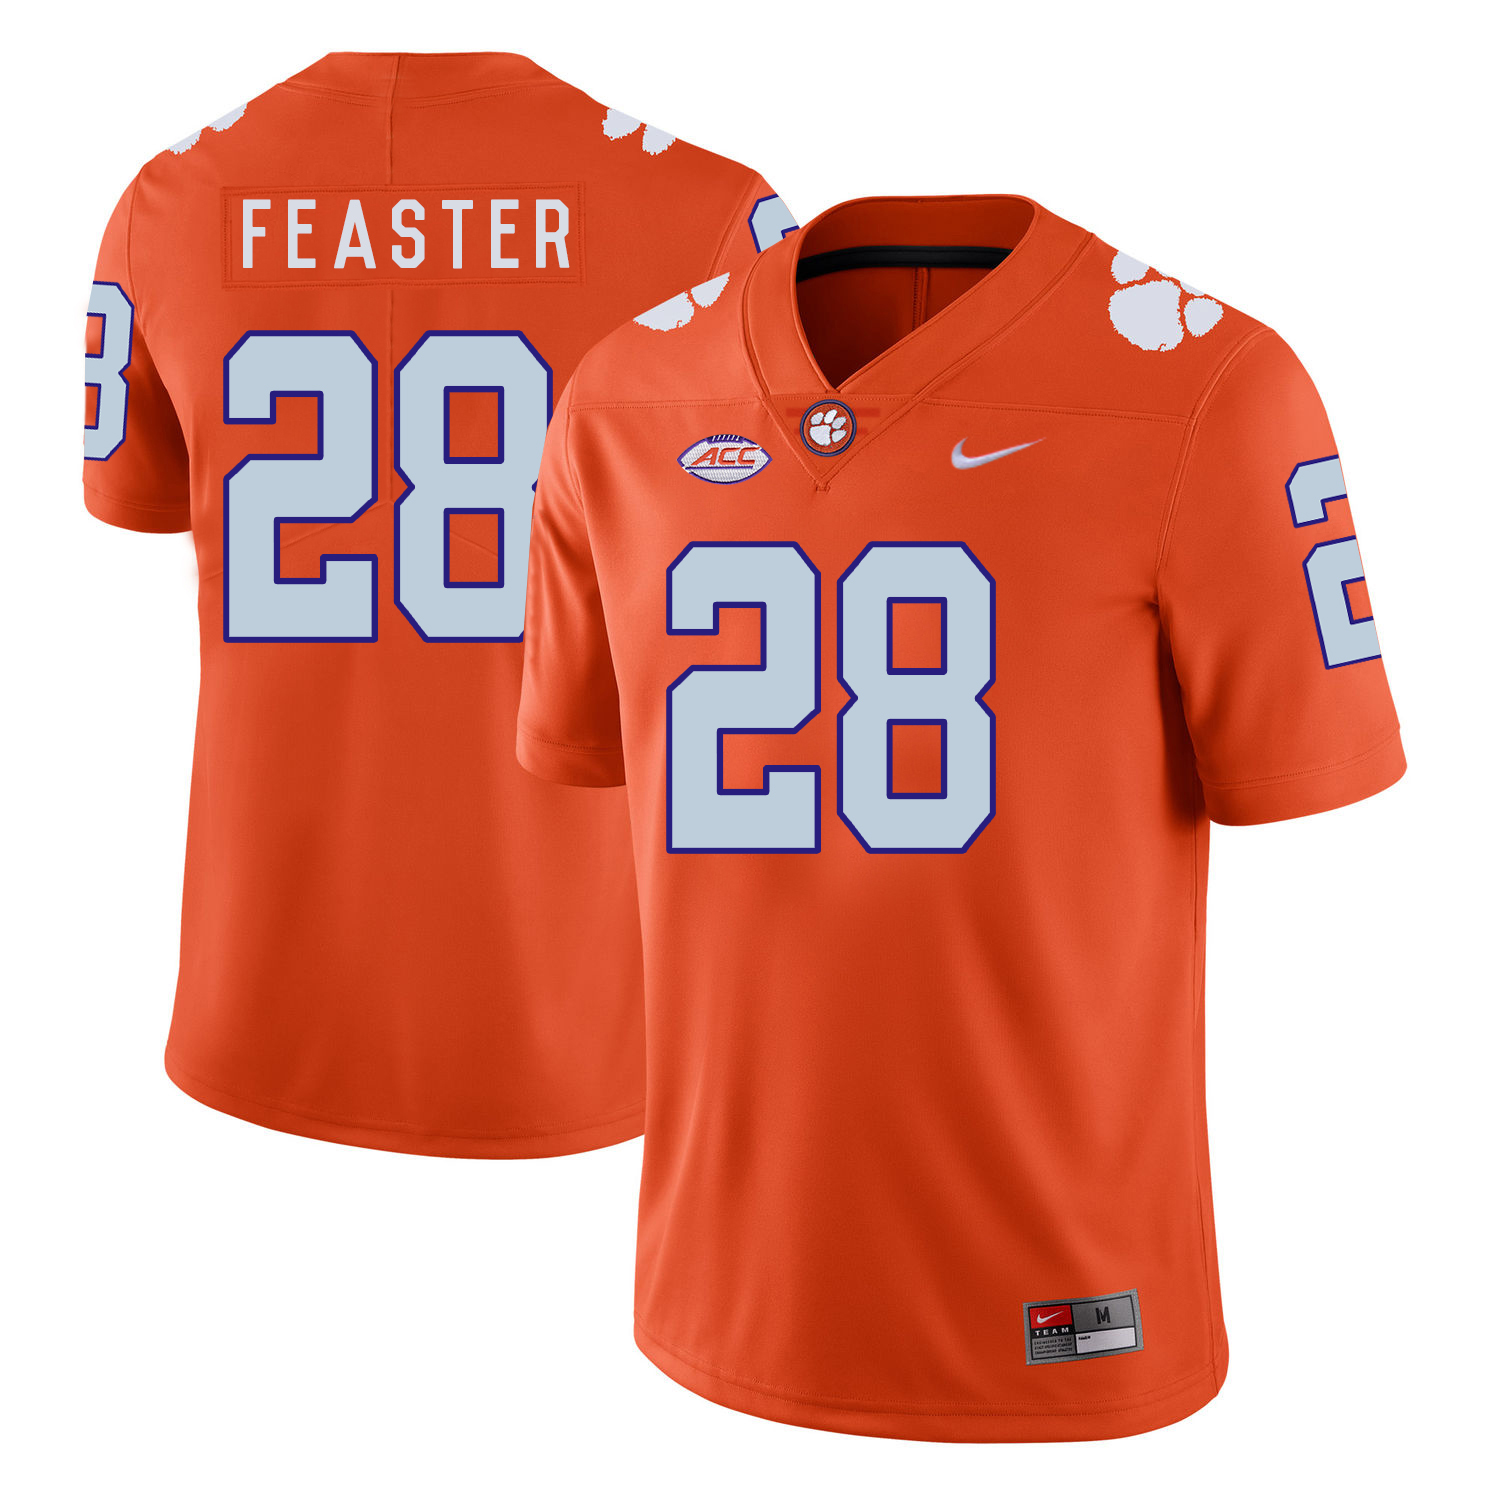 Clemson Tigers 28 Tavien Feaster Orange Nike College Football Jersey